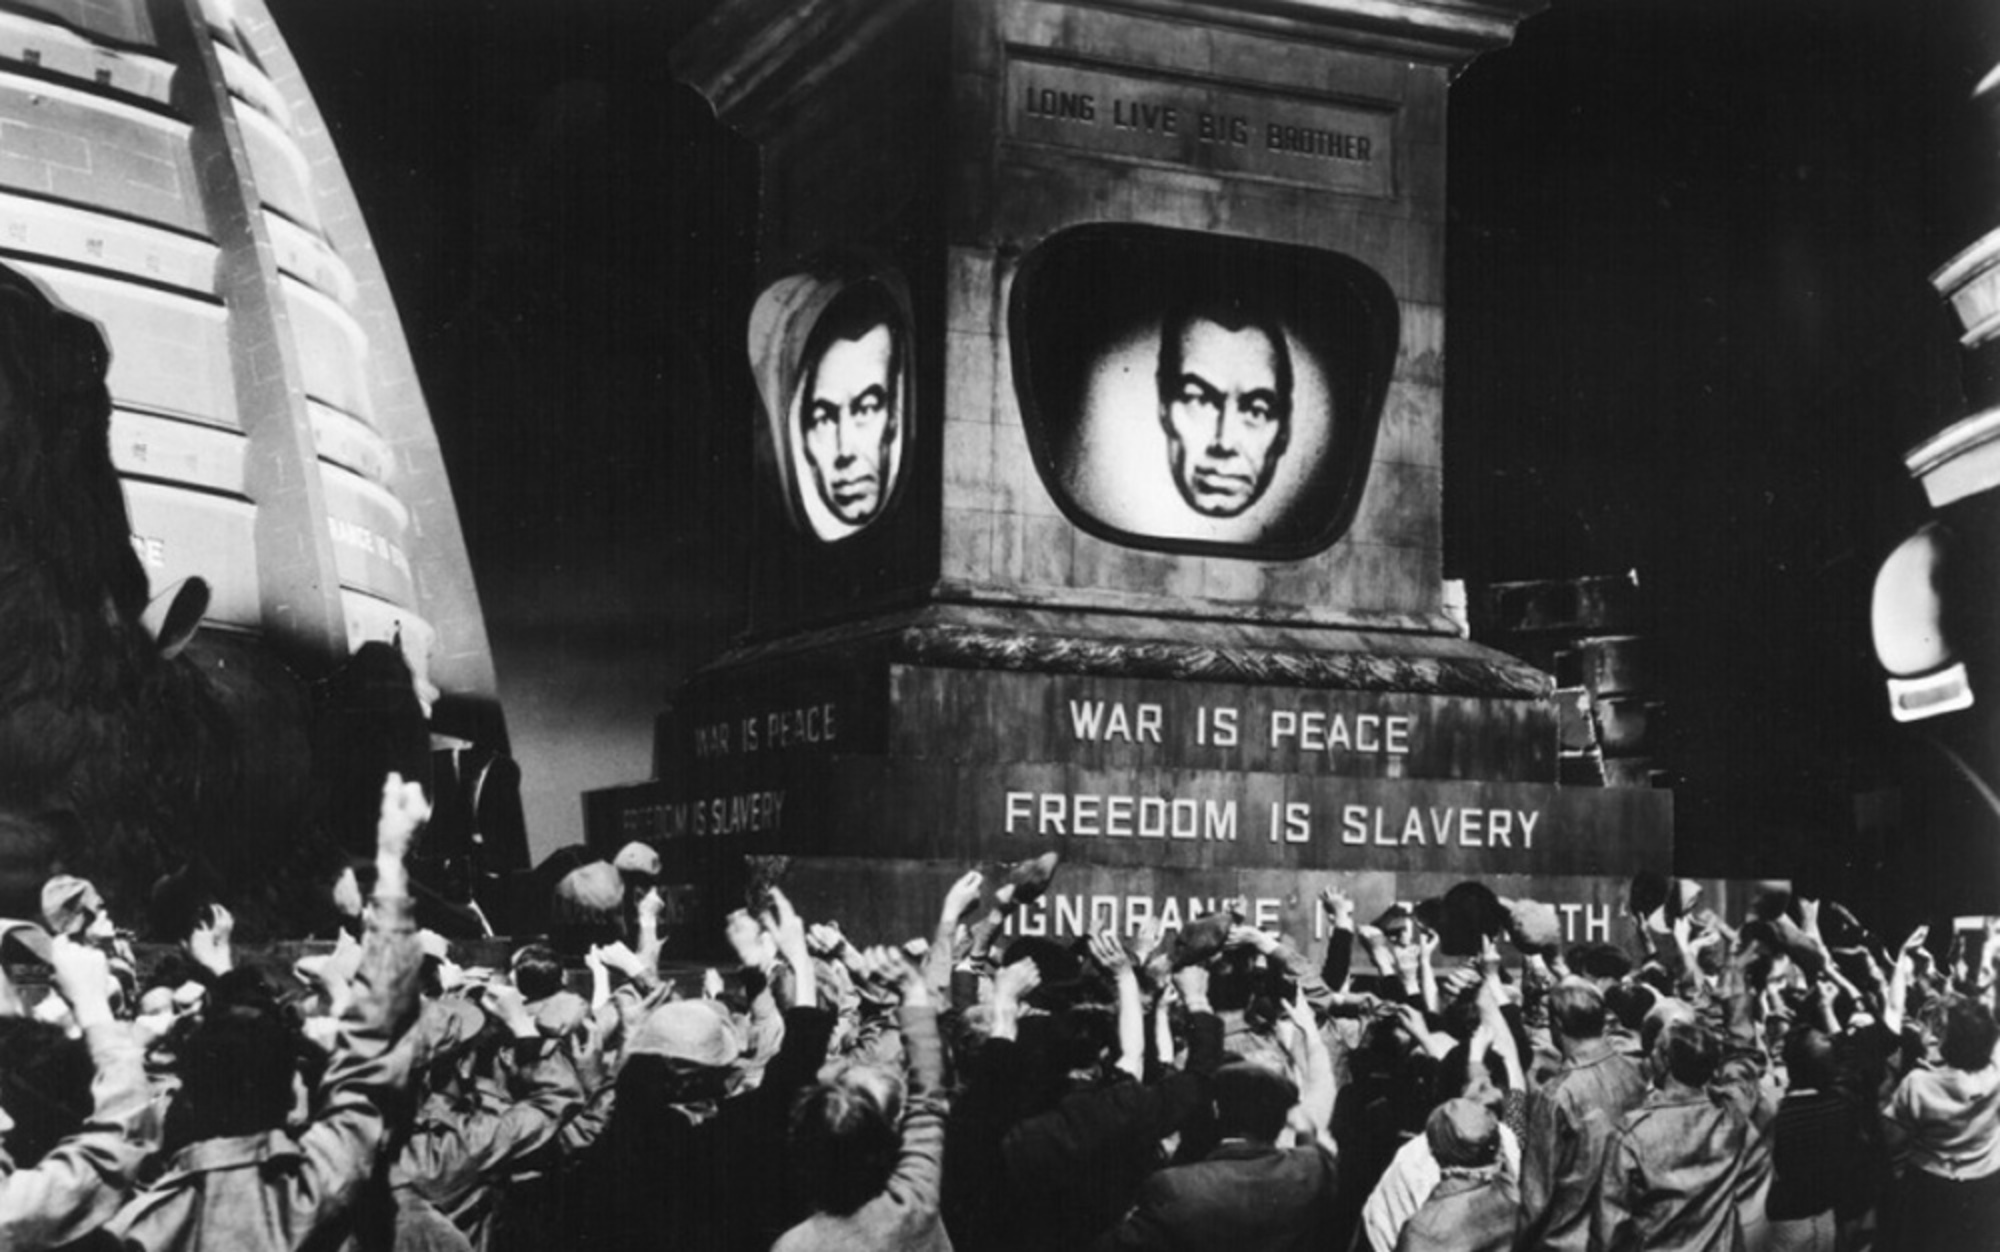 1984 essays technology To the surprise of absolutely no one, george orwell is everywhere these days  his seven-decade-old dystopian classic, 1984, recently made.